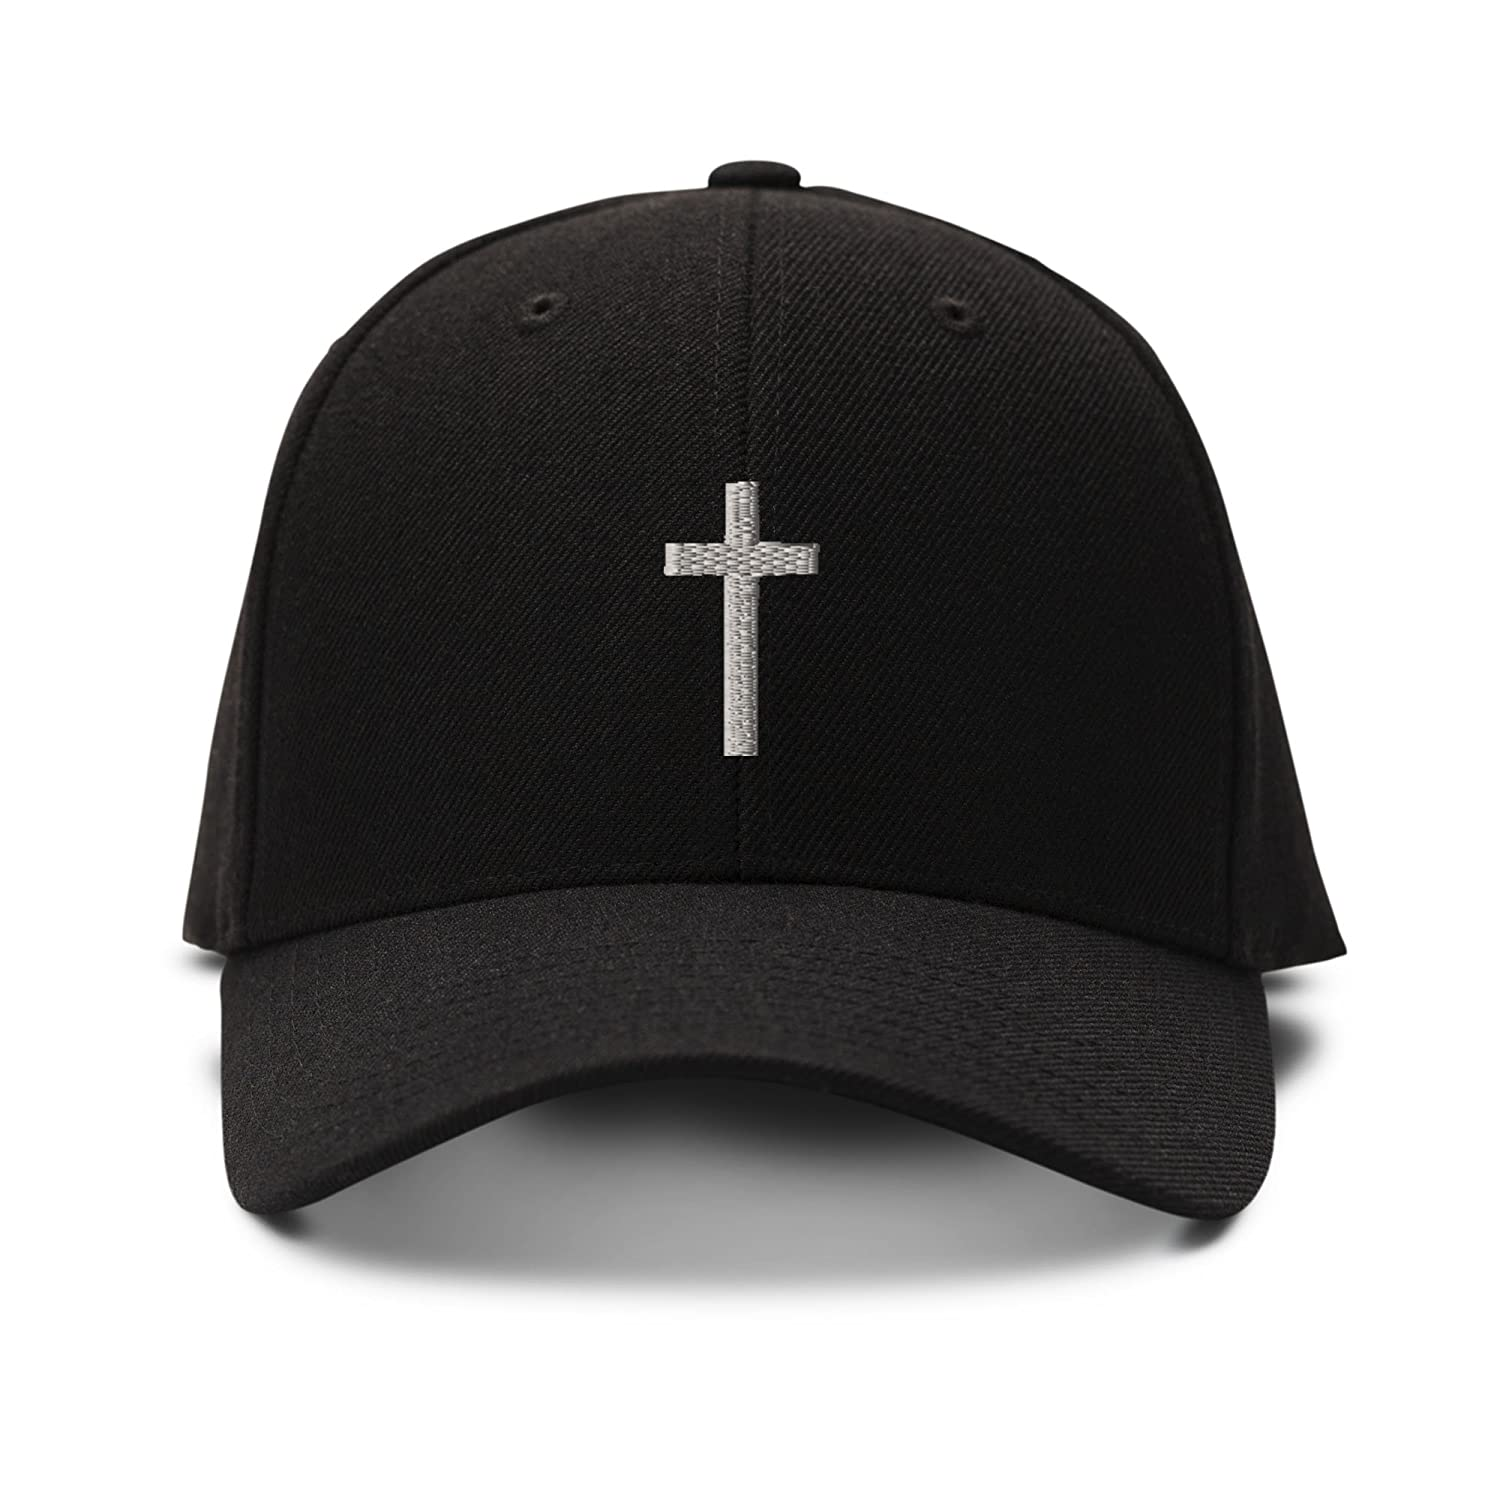 Amazon.com: Cross Silver Embroidered Unisex Adult Hook & Loop Acrylic Adjustable Structured Baseball Hat Cap - Black, One Size: Clothing